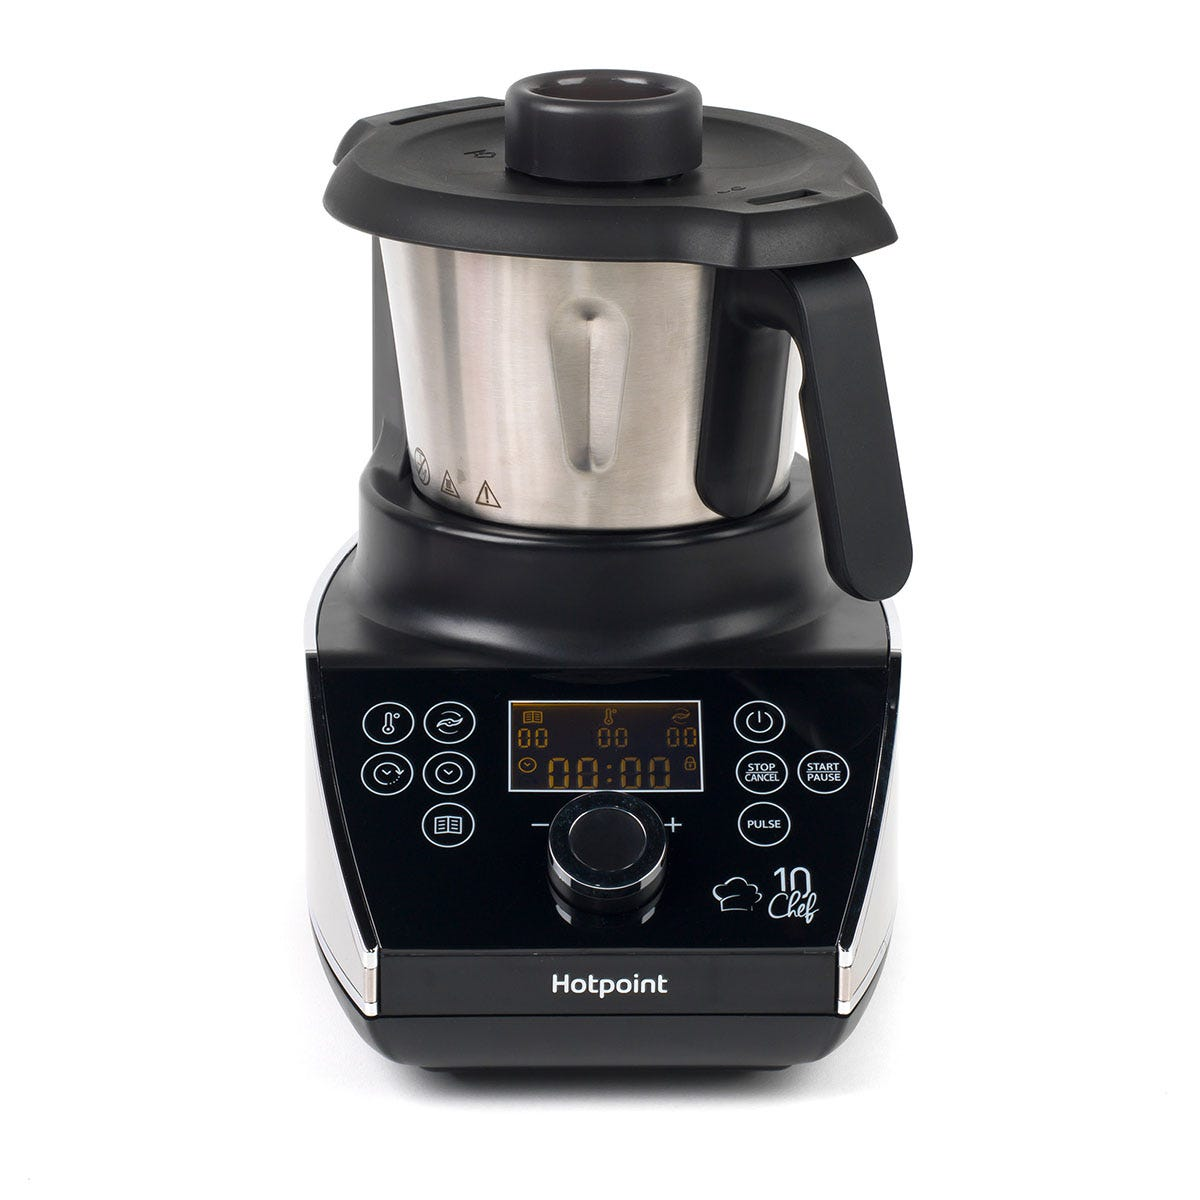 Hotpoint F100194 Ultimate Collection 10 Chef Multi-Cooker & Blender - Black